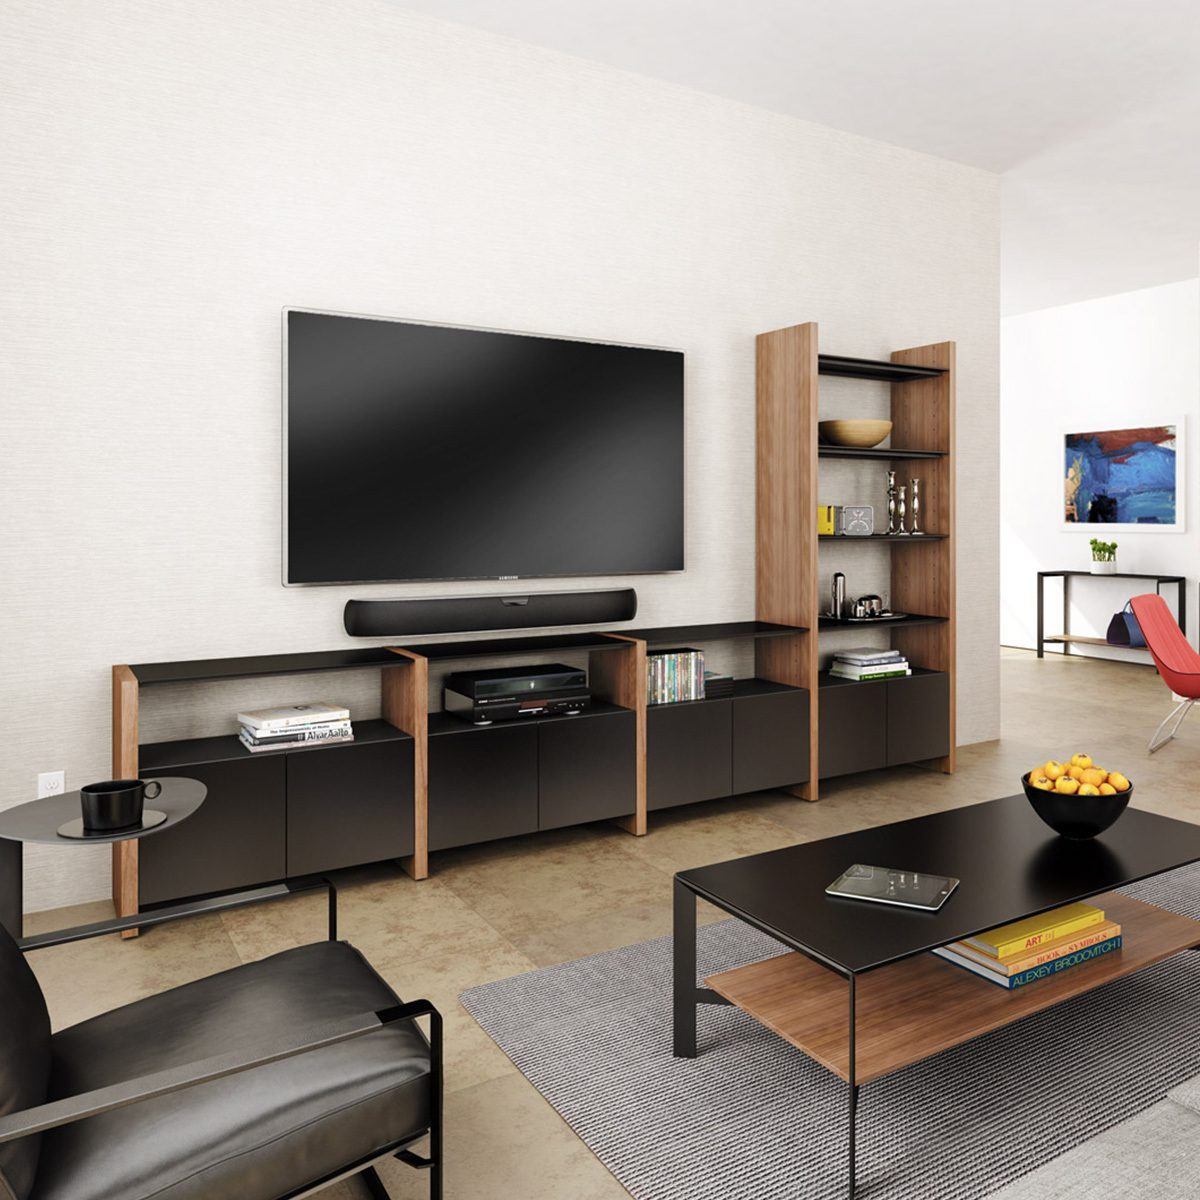 Semblance System in room setting